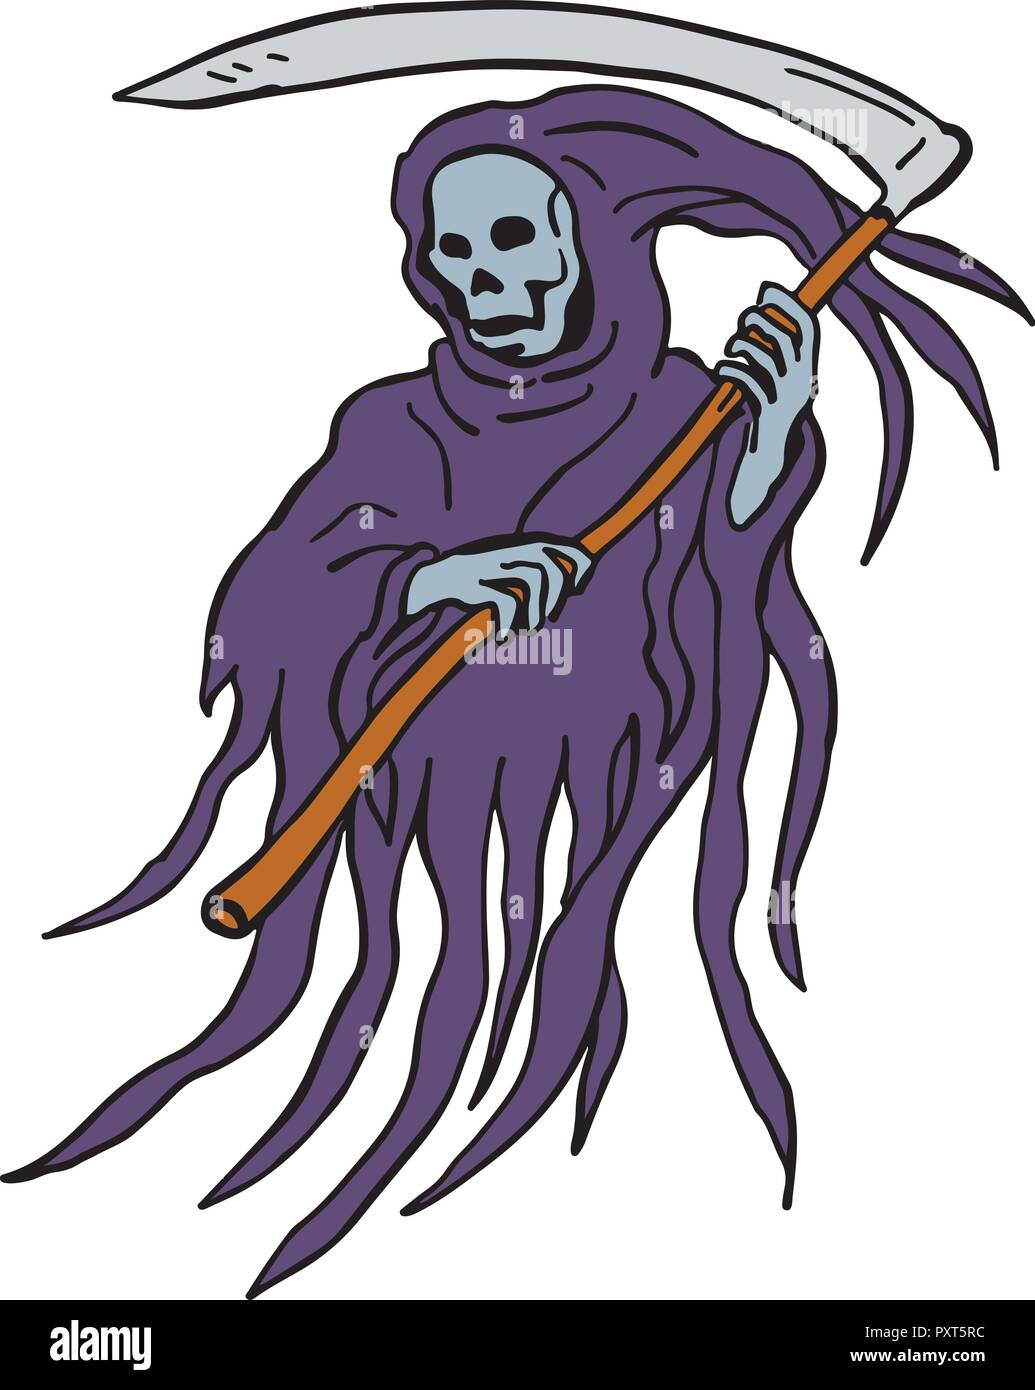 Drawing sketch style illustration of the evil grim reaper or death